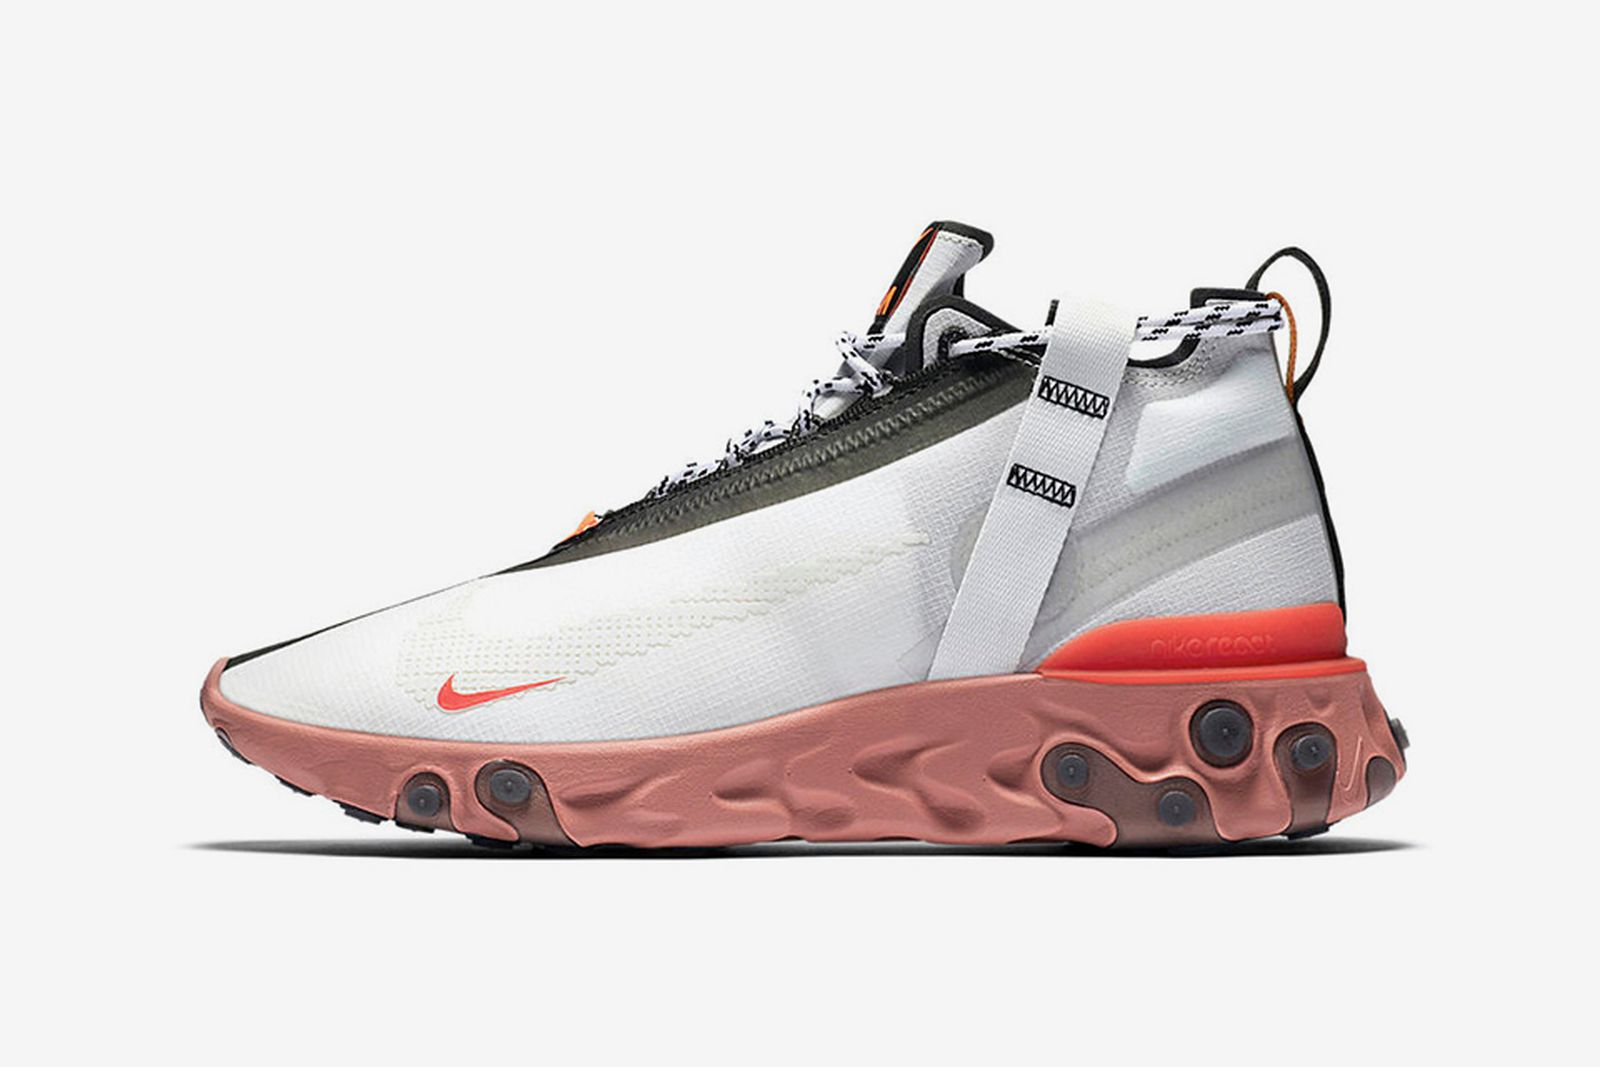 Nike React Runner Mid WR ISPA: Release Date, Price, & More Info